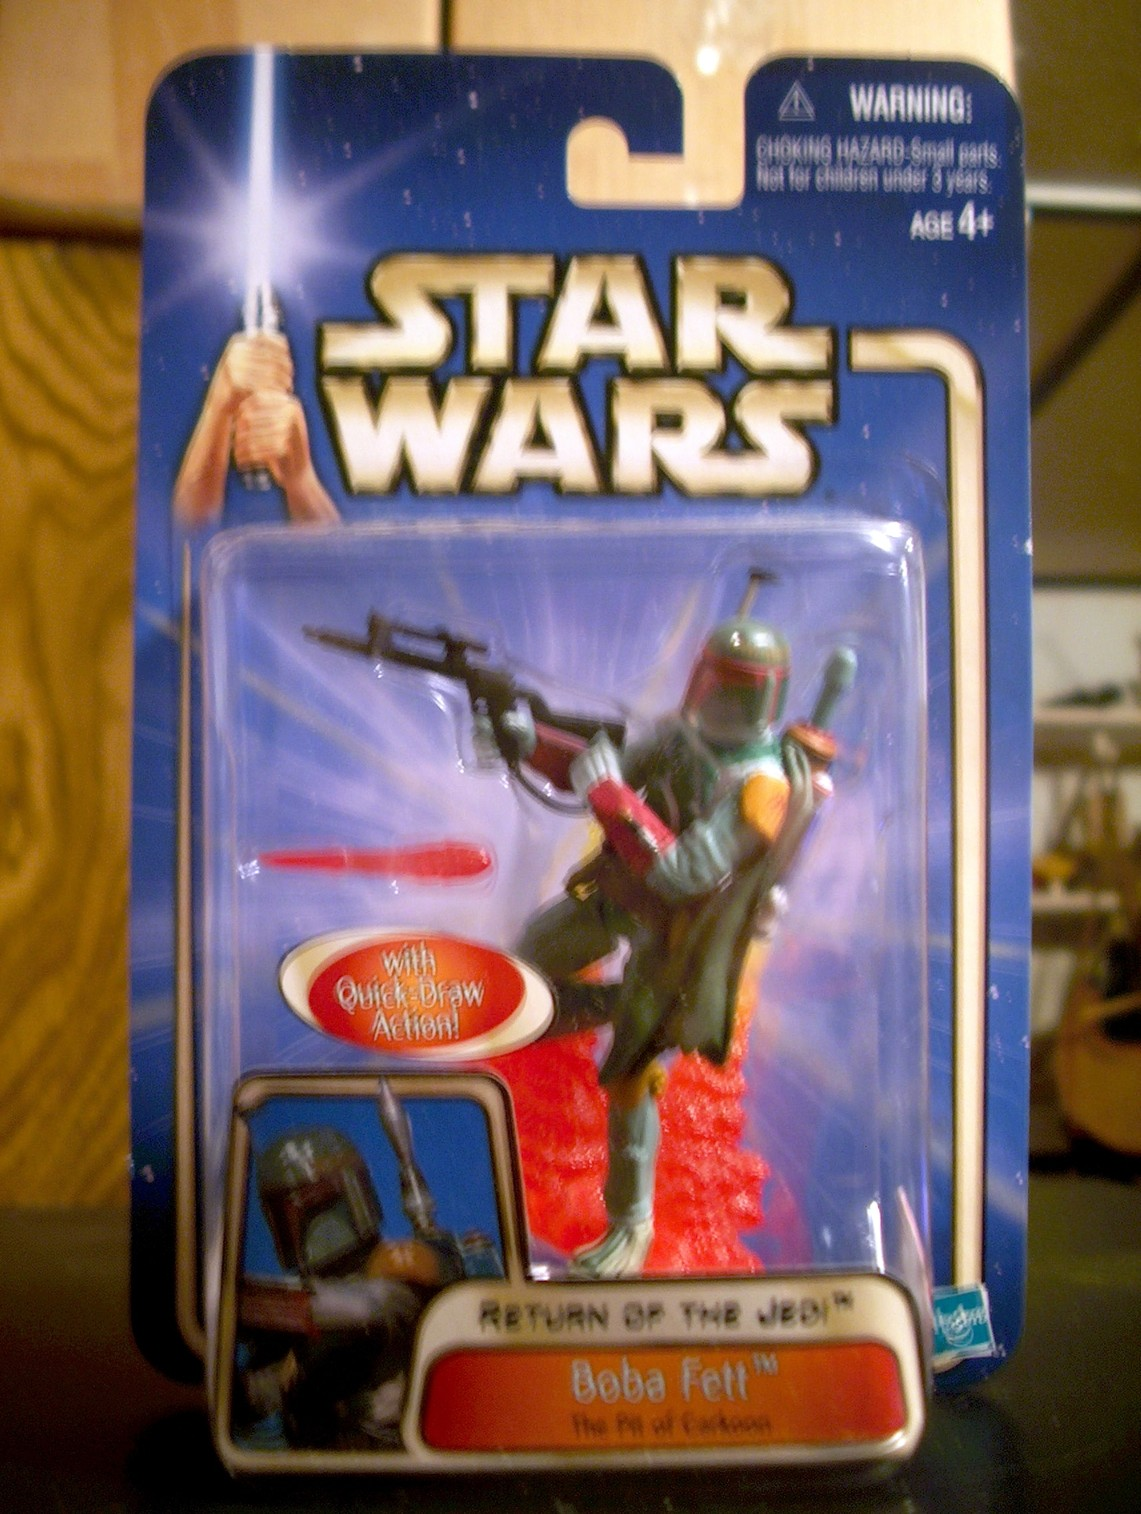 Boba Fett (The Pit of Carkoon)